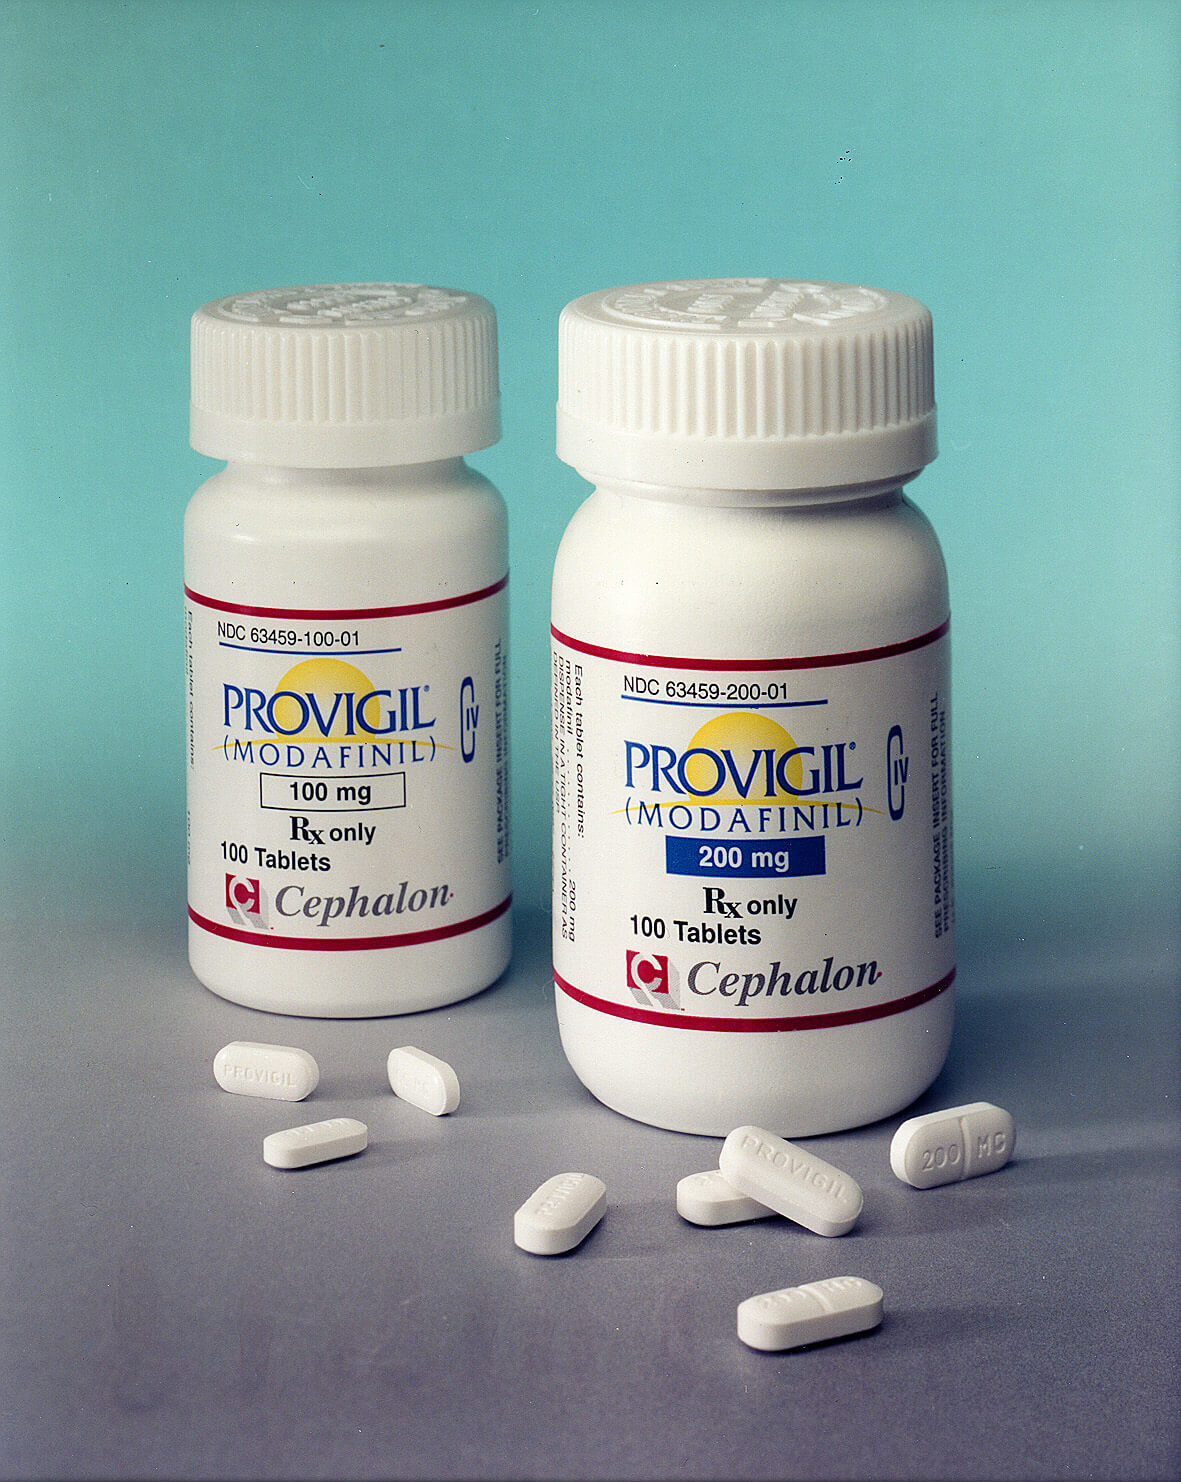 cheapest generic provigil from india